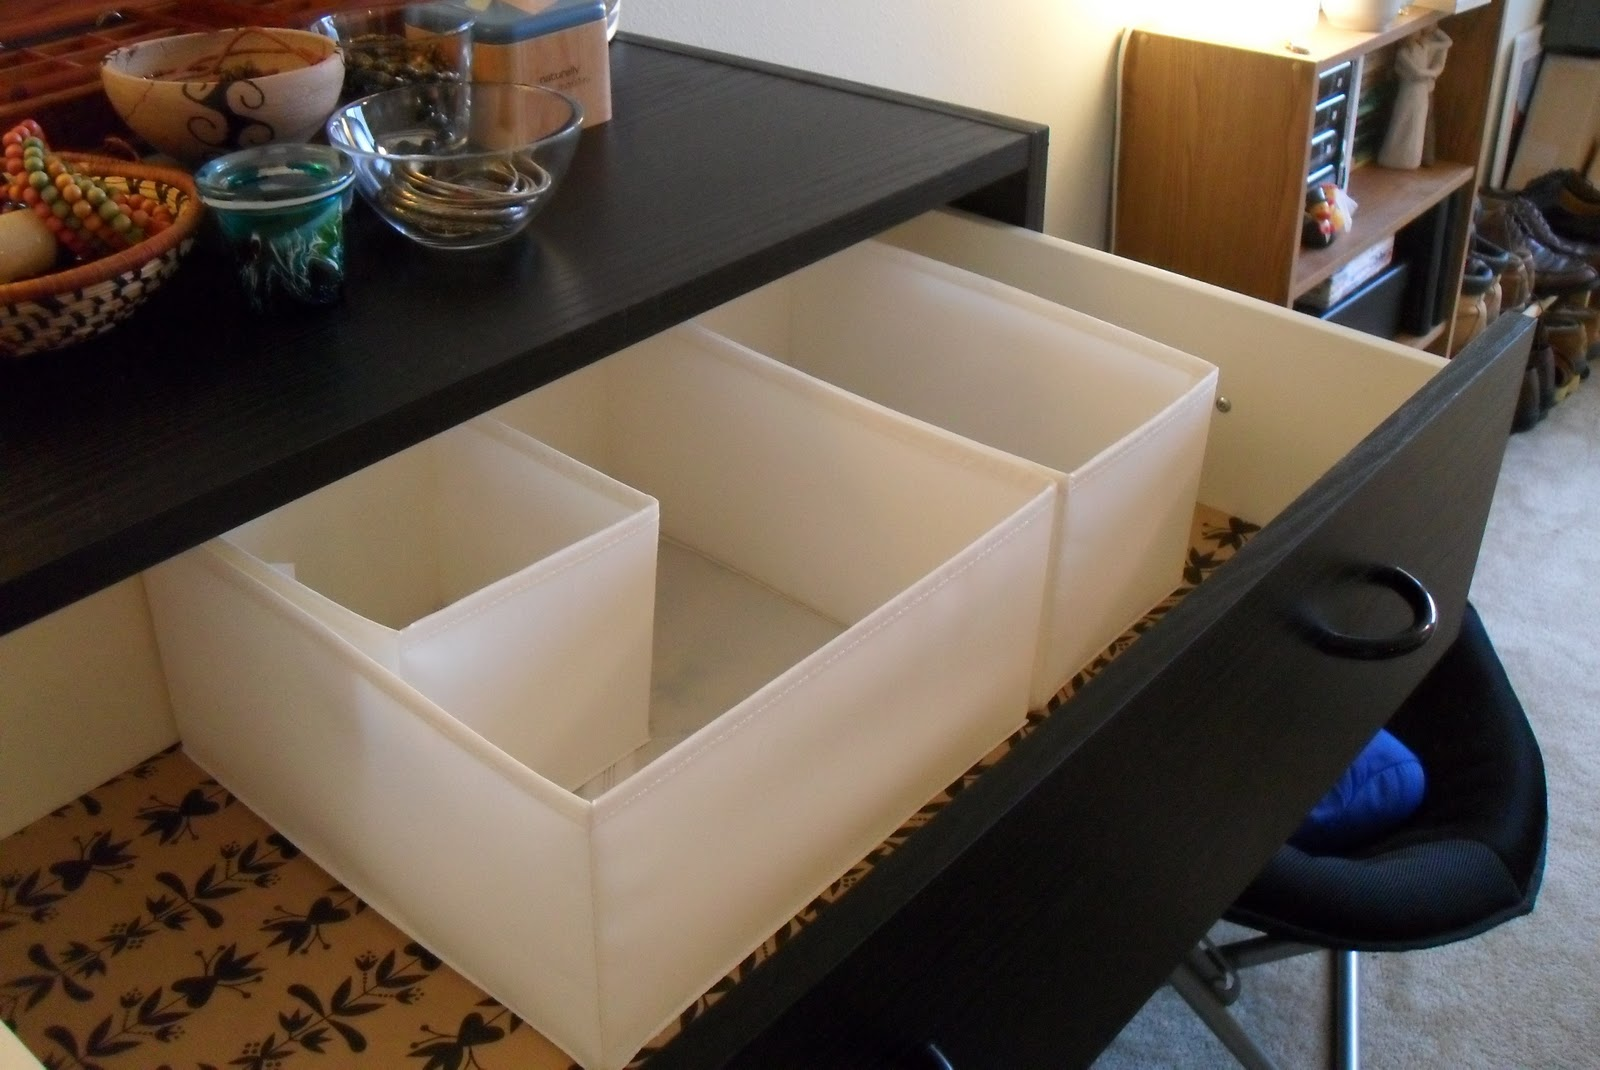 Ikea Regal Quadratische Fächer ~ With my dresser functioning again, I tackled the organizational